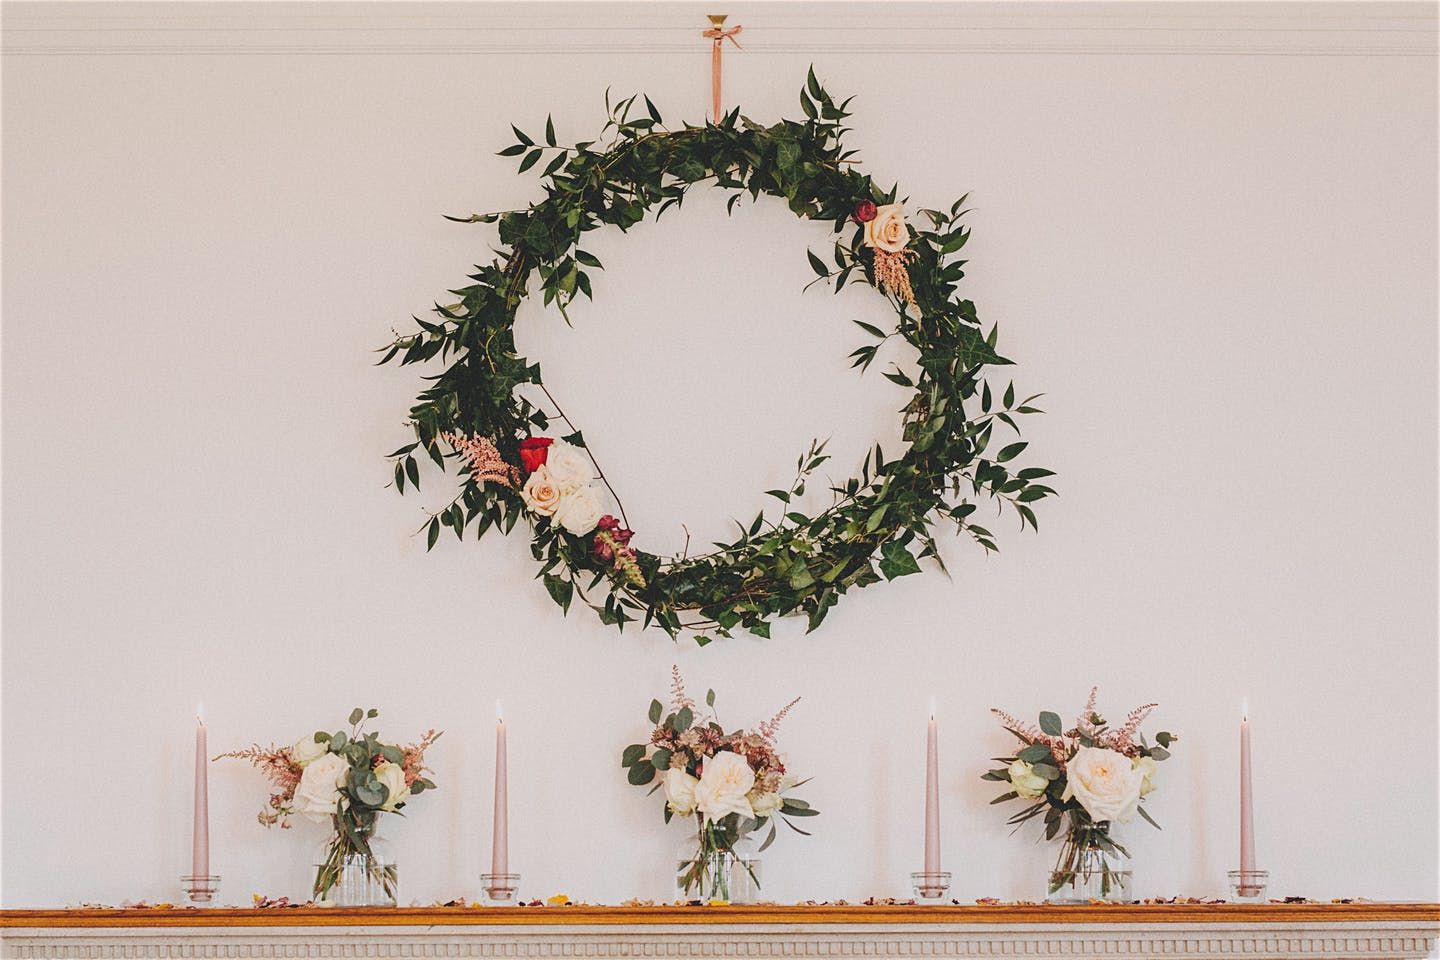 Hanging foliage hoop Daisy Lane Floral Design at Coombe Lodge near Bristol